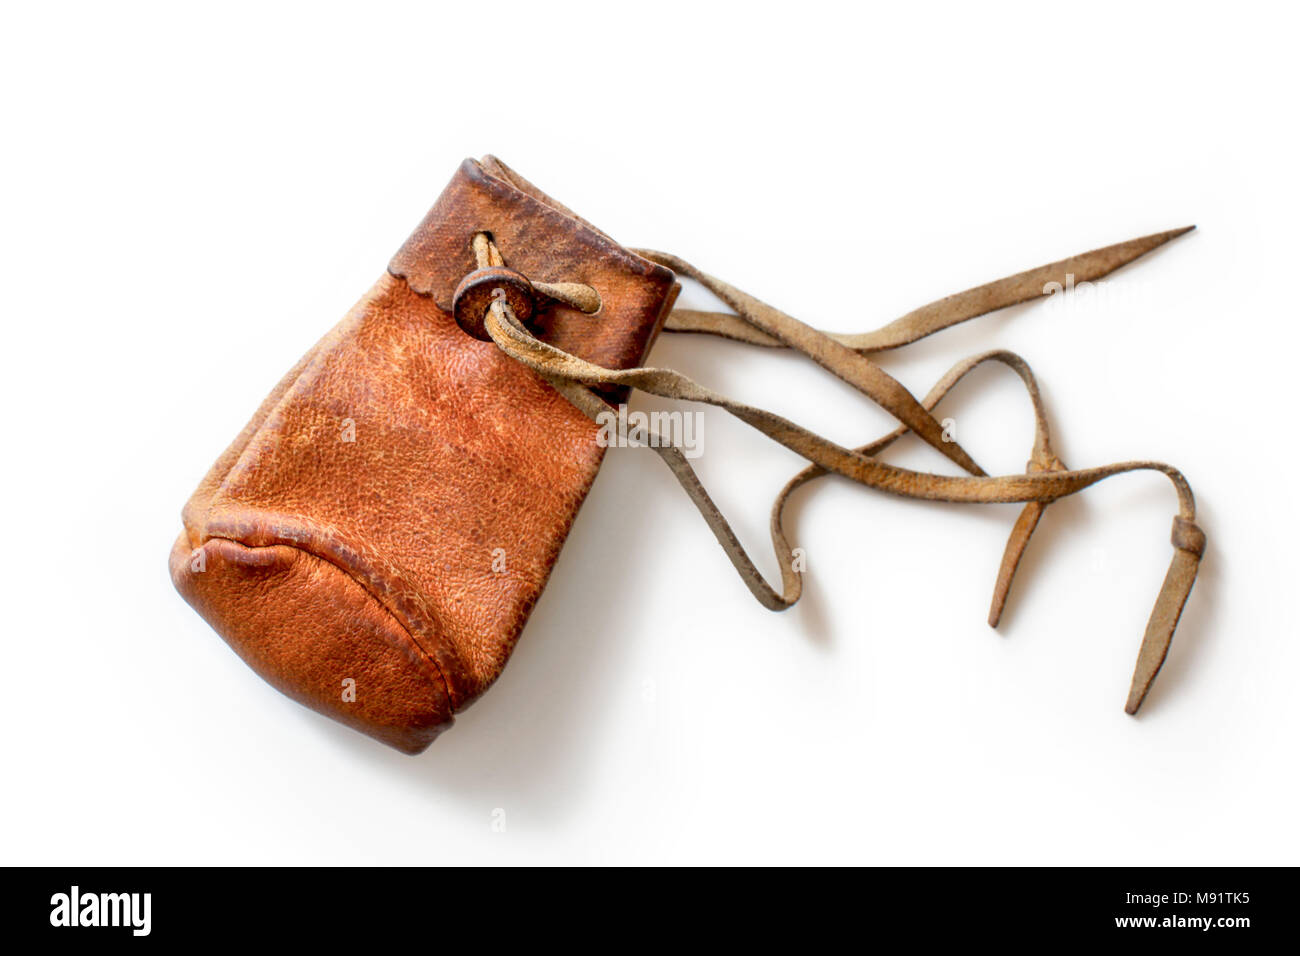 Leather Sack Stock Photos   Leather Sack Stock Images - Alamy bc93f99afc1ef